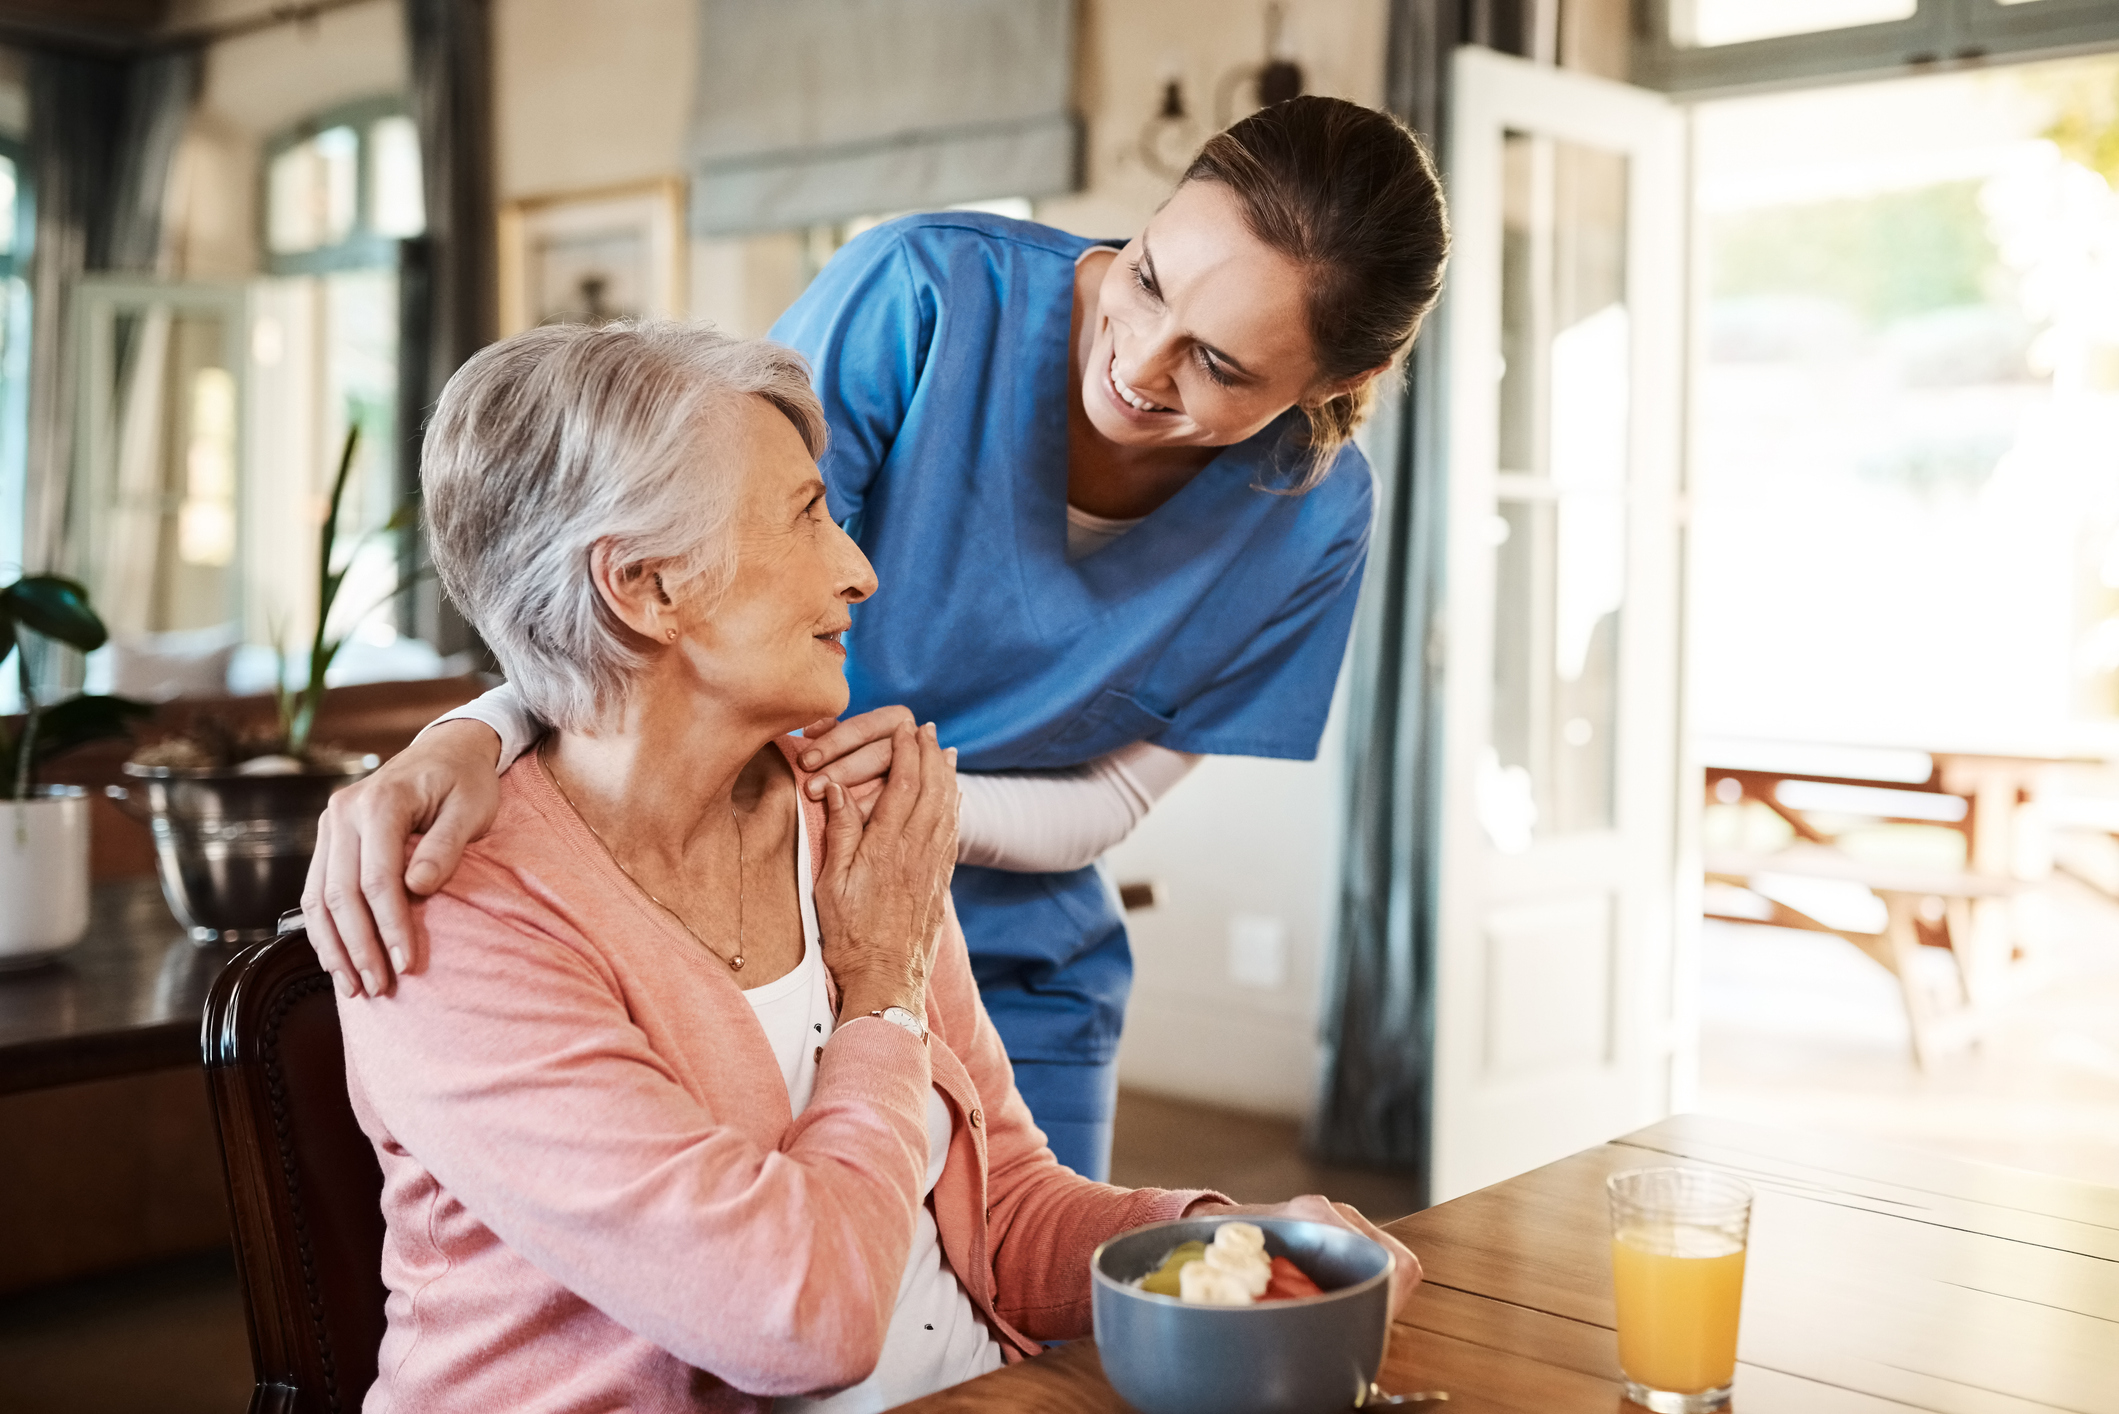 Eating healthy for seniors can be made easier